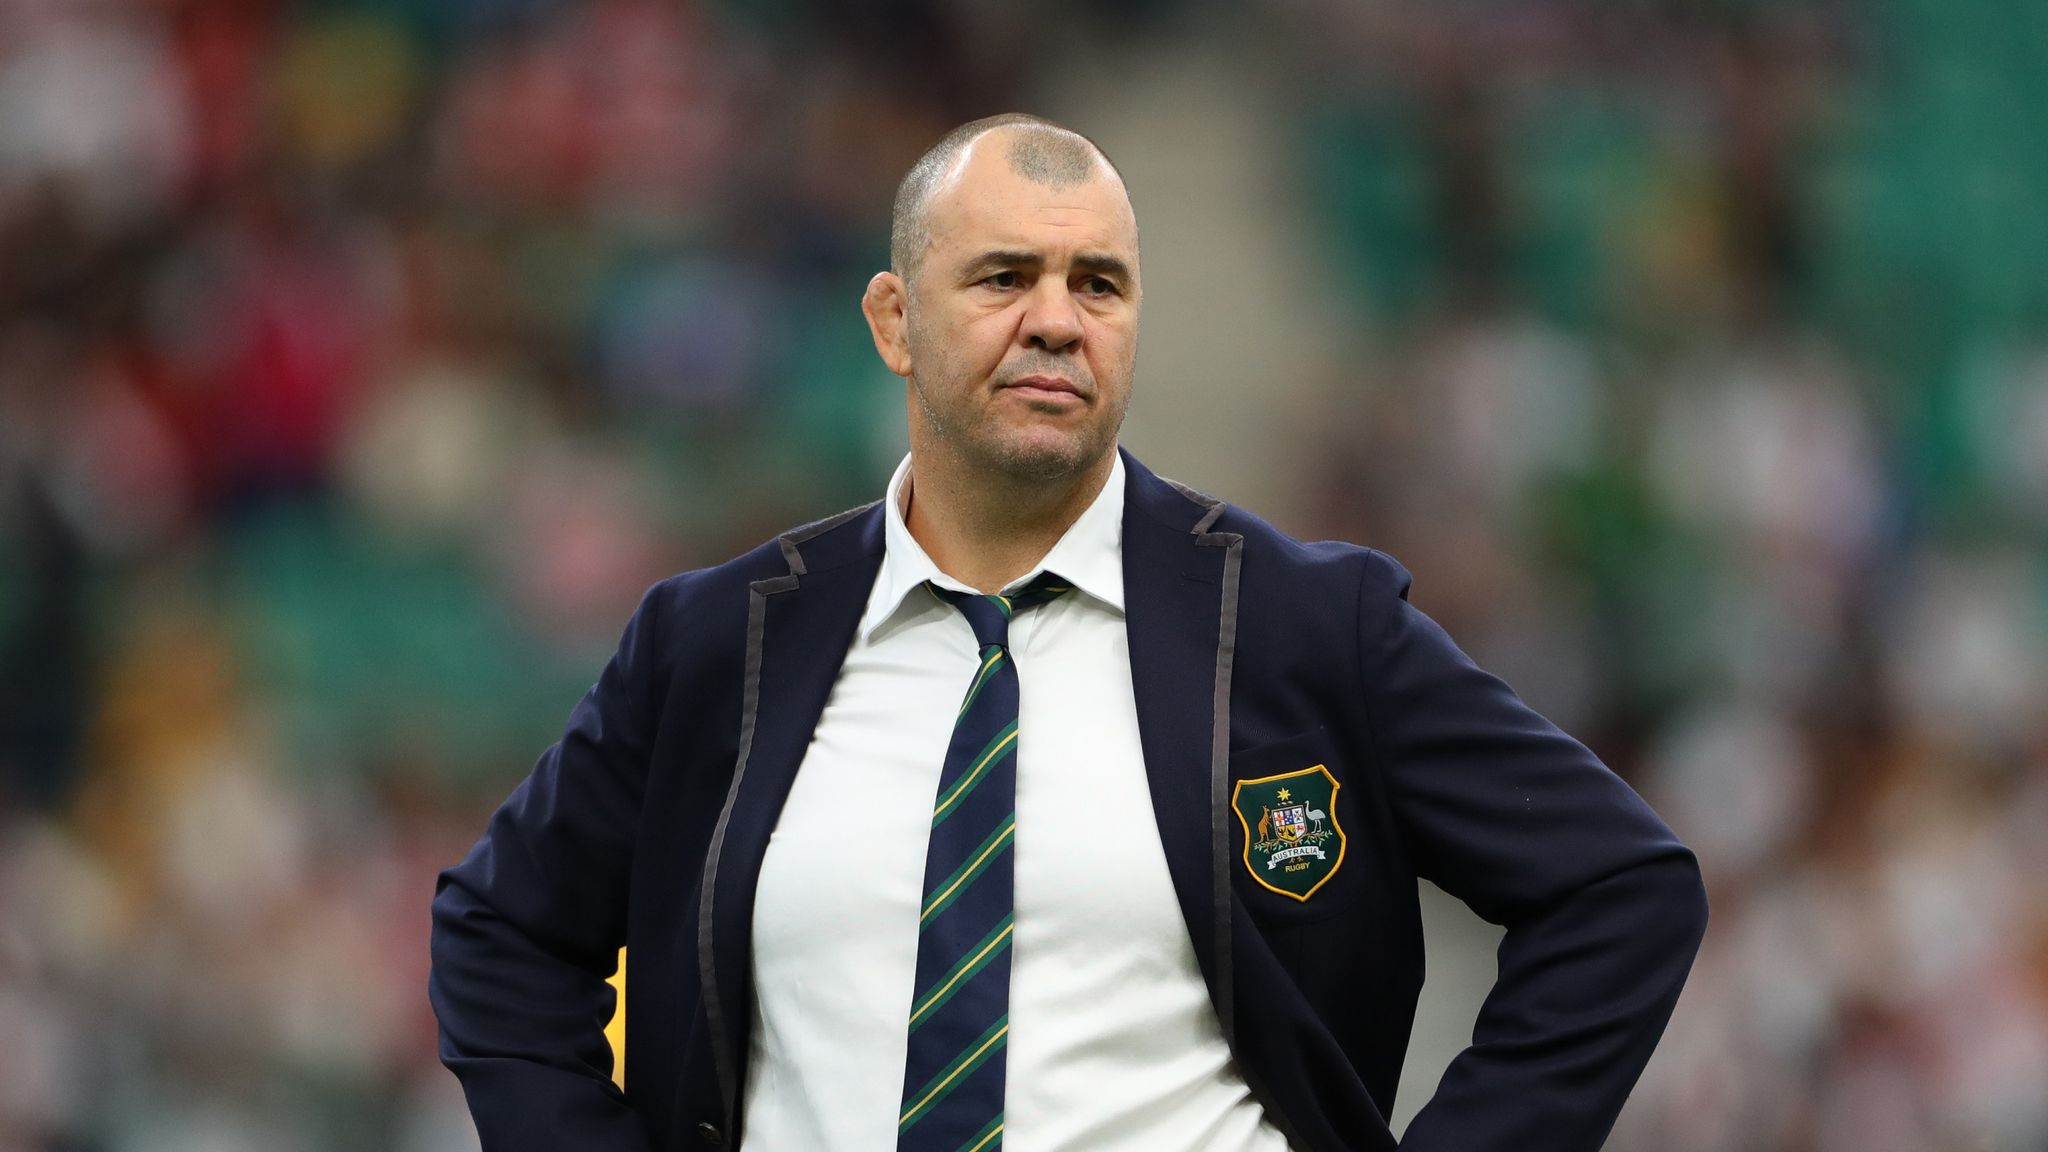 Australia coach Michael Cheika upset by questions on future